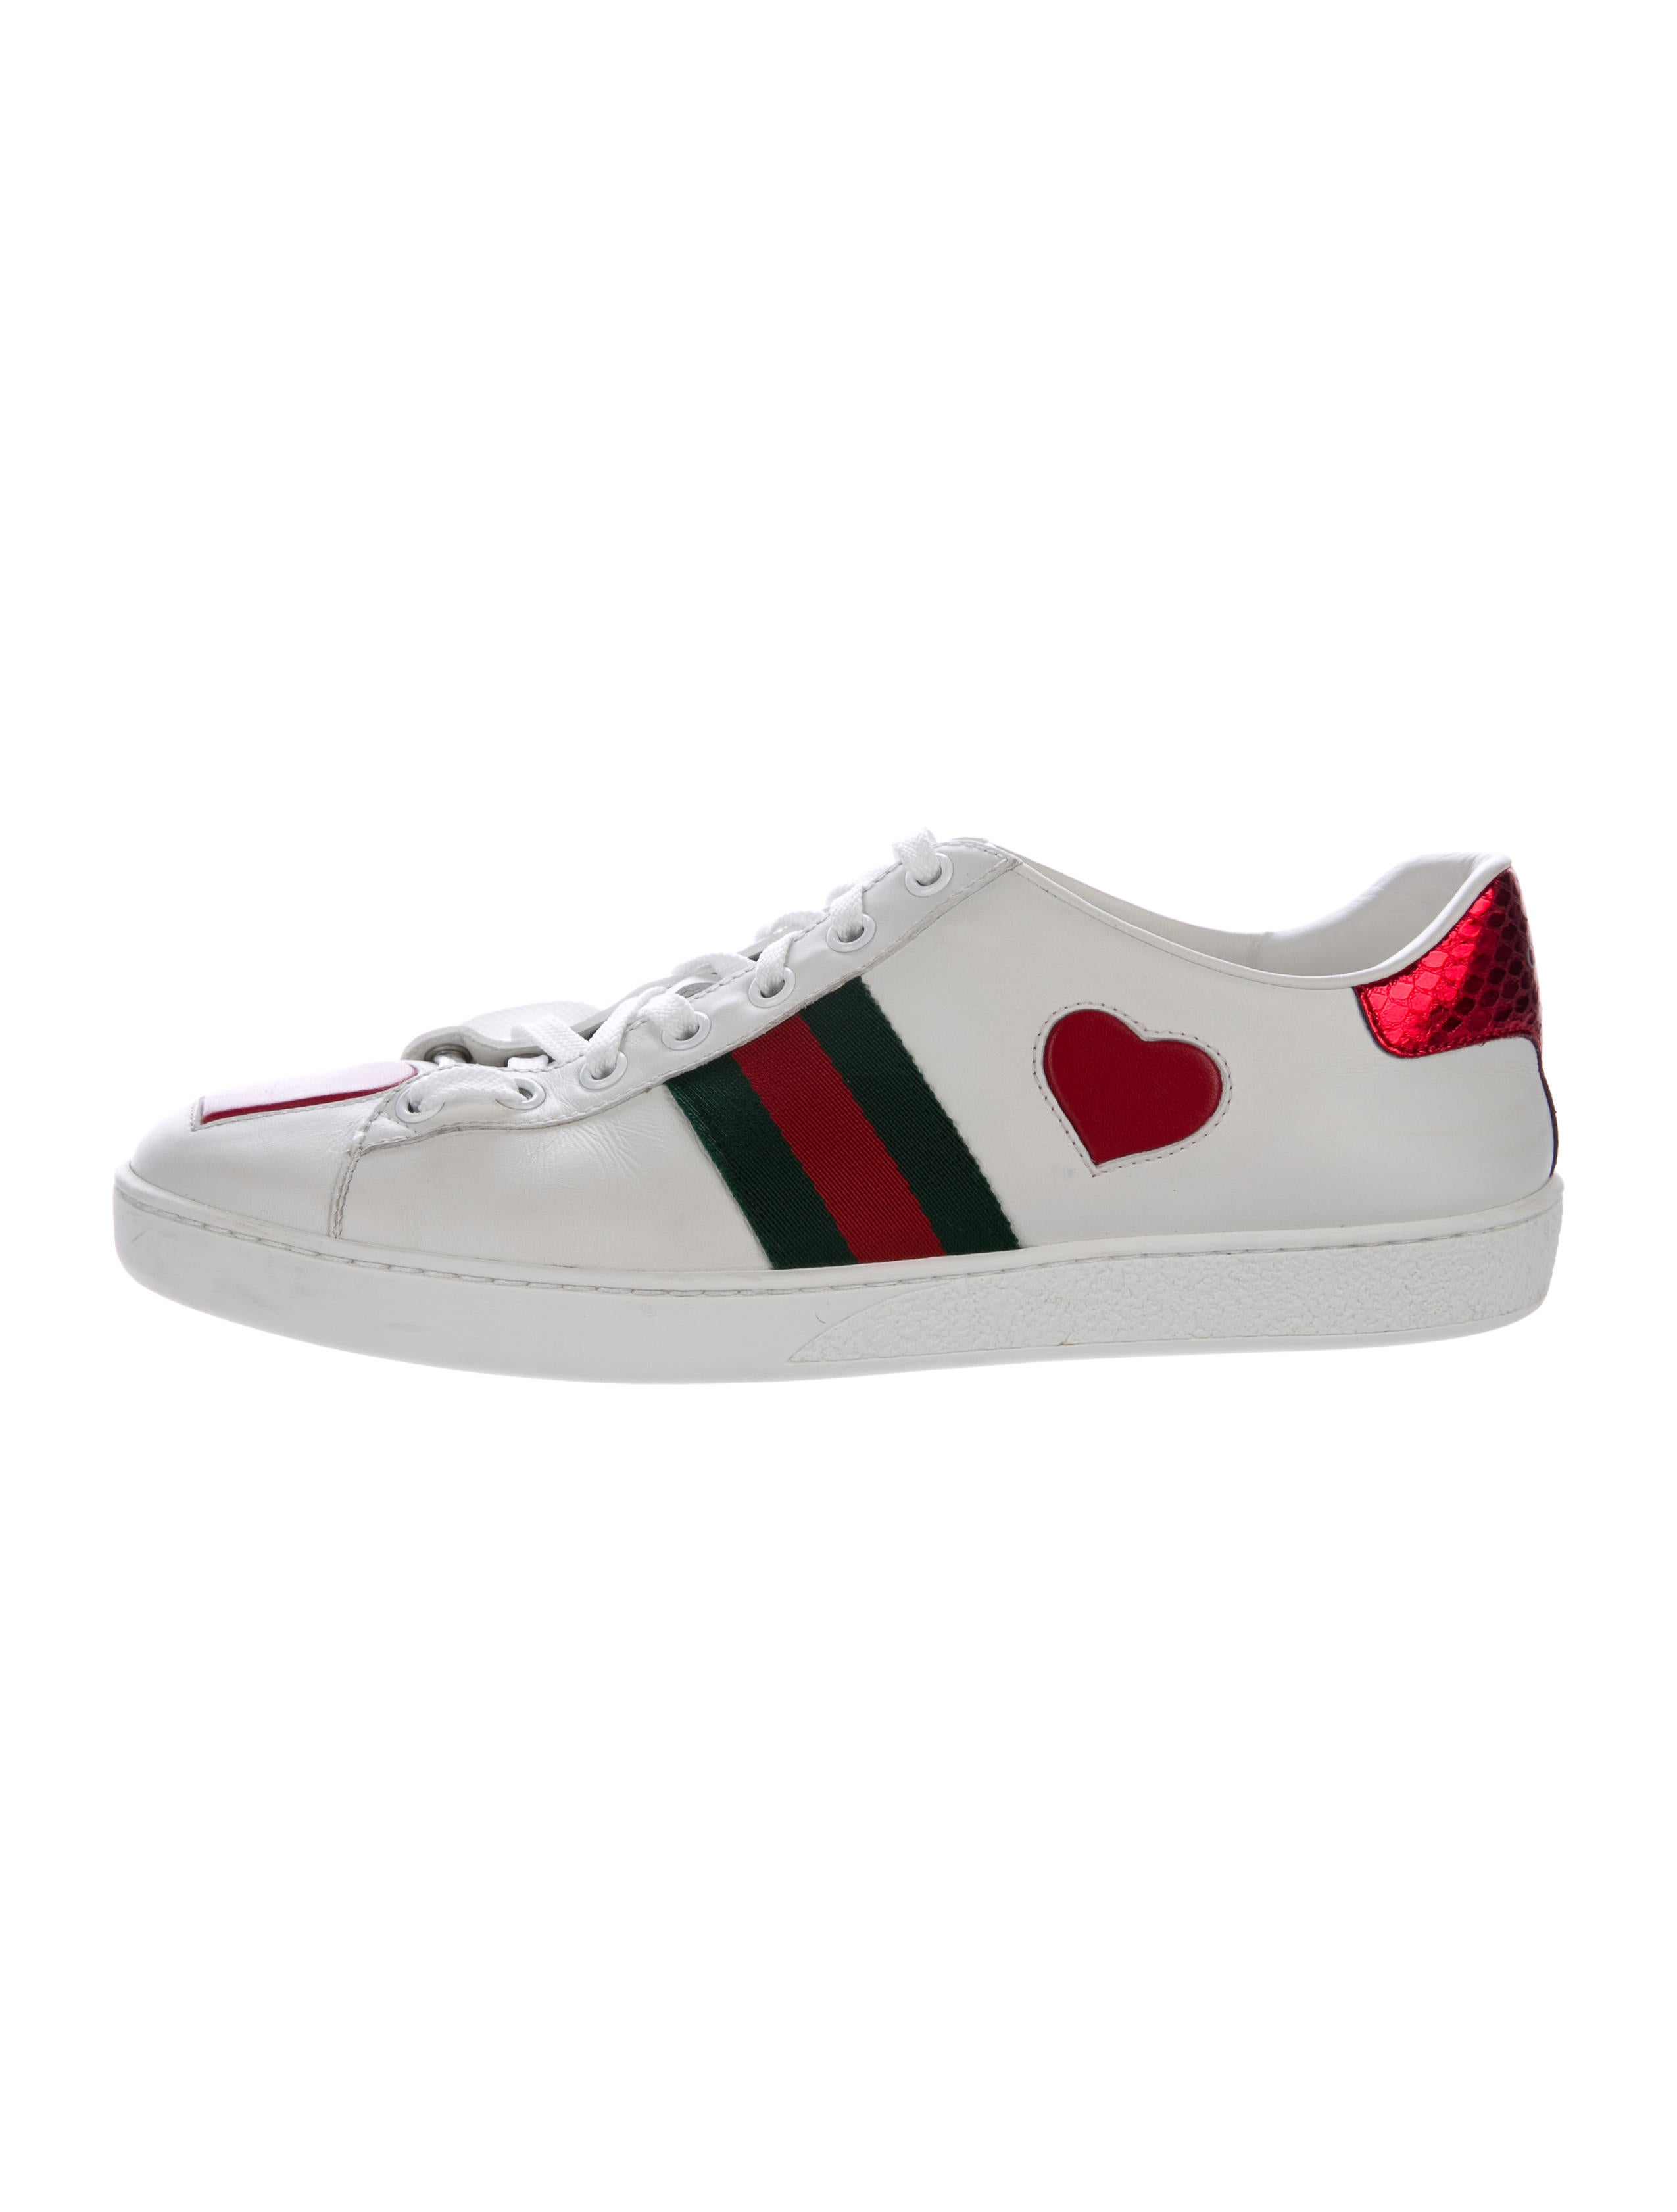 Gucci 2017 Ace Heart Sneakers - Shoes - GUC159825 | The